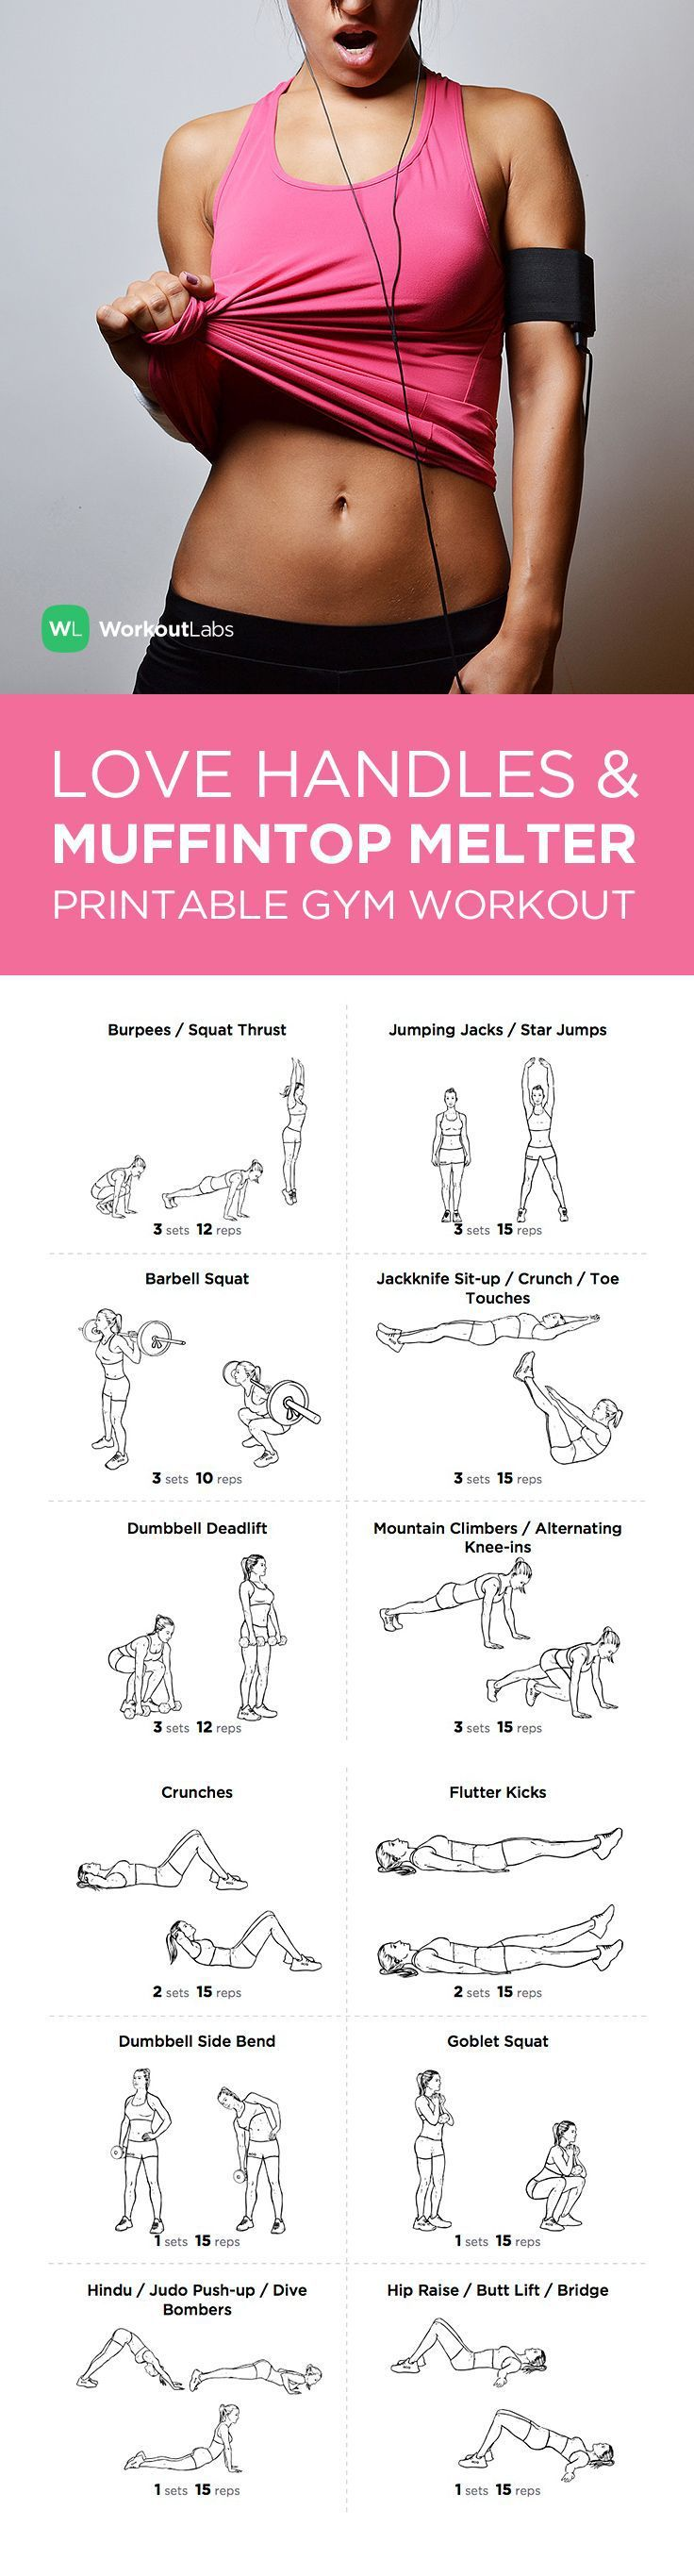 23 Best Home Gym Room Ideas For Healthy Lifestyle | Gym, Workout and ...